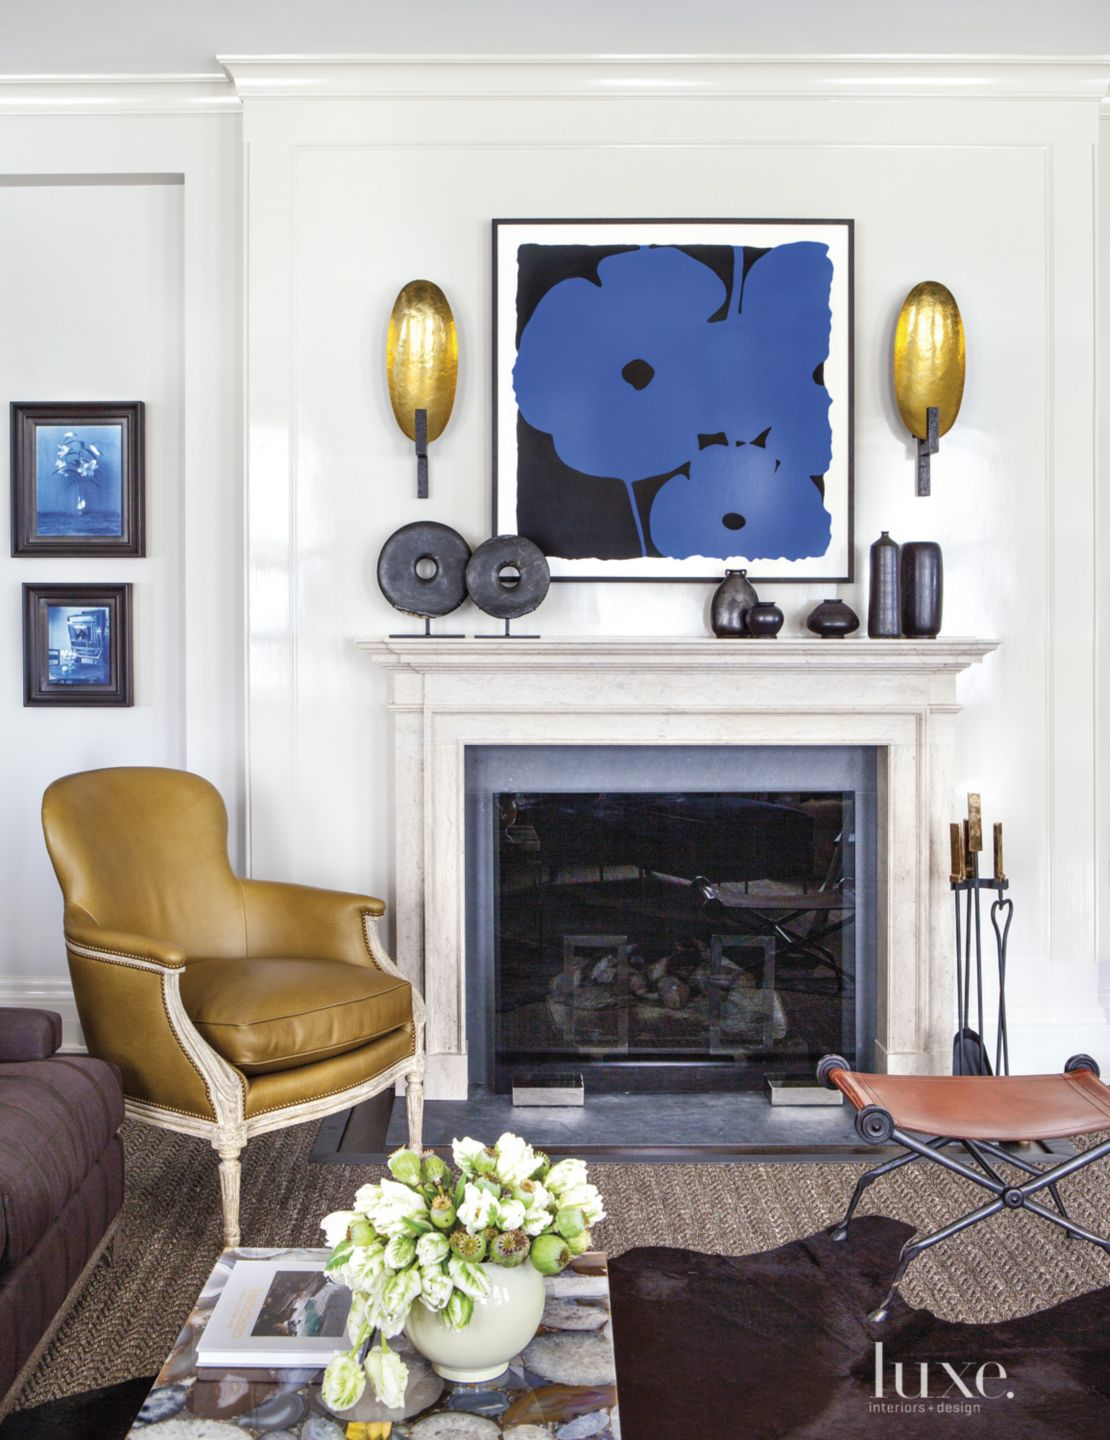 Eclectic Neutral Living Room with Poppy Artwork